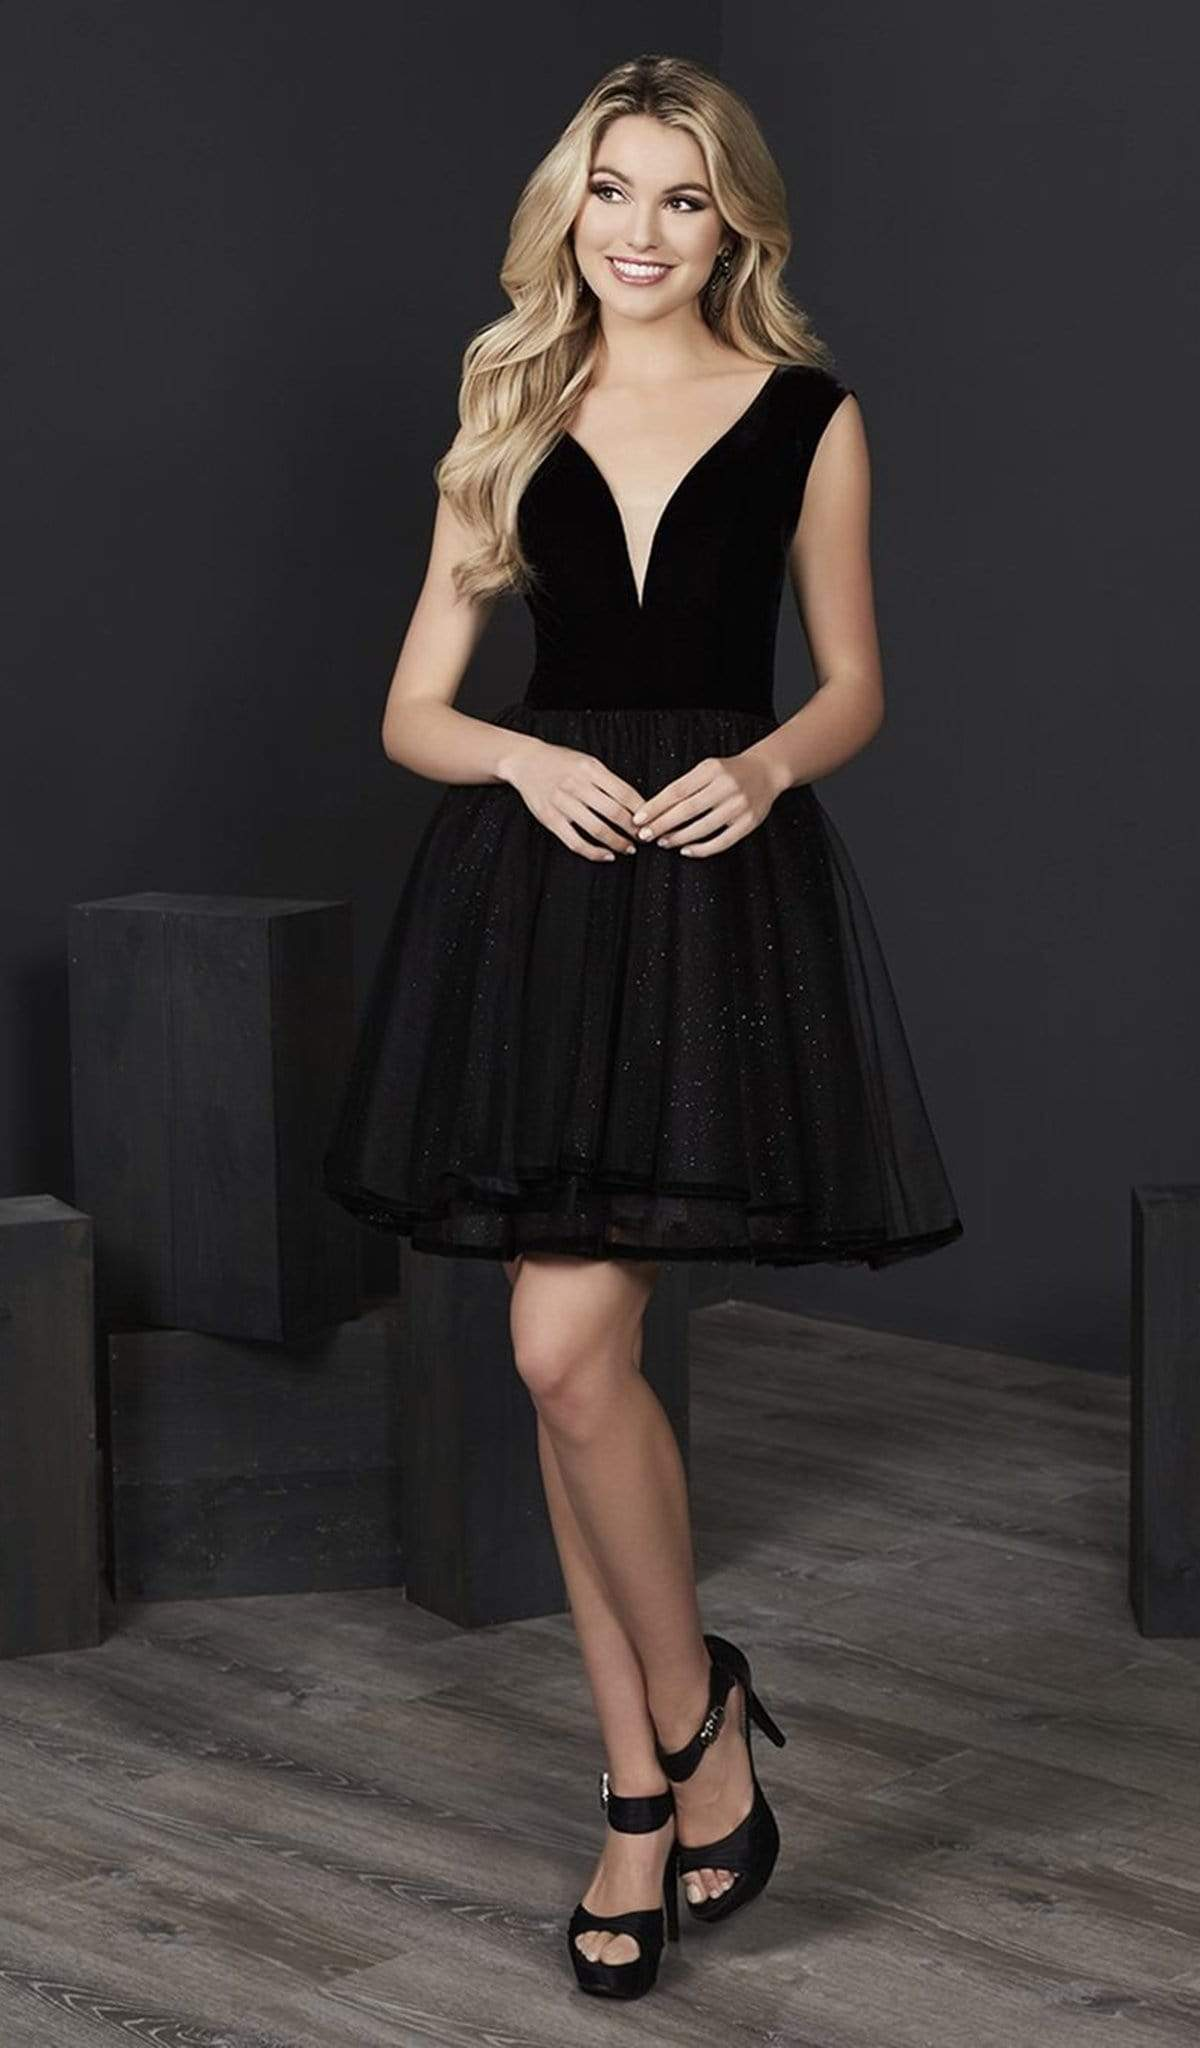 Tiffany Homecoming - 27228 Velvet Deep V-neck Tulle A-line Dress from Tiffany Homecoming